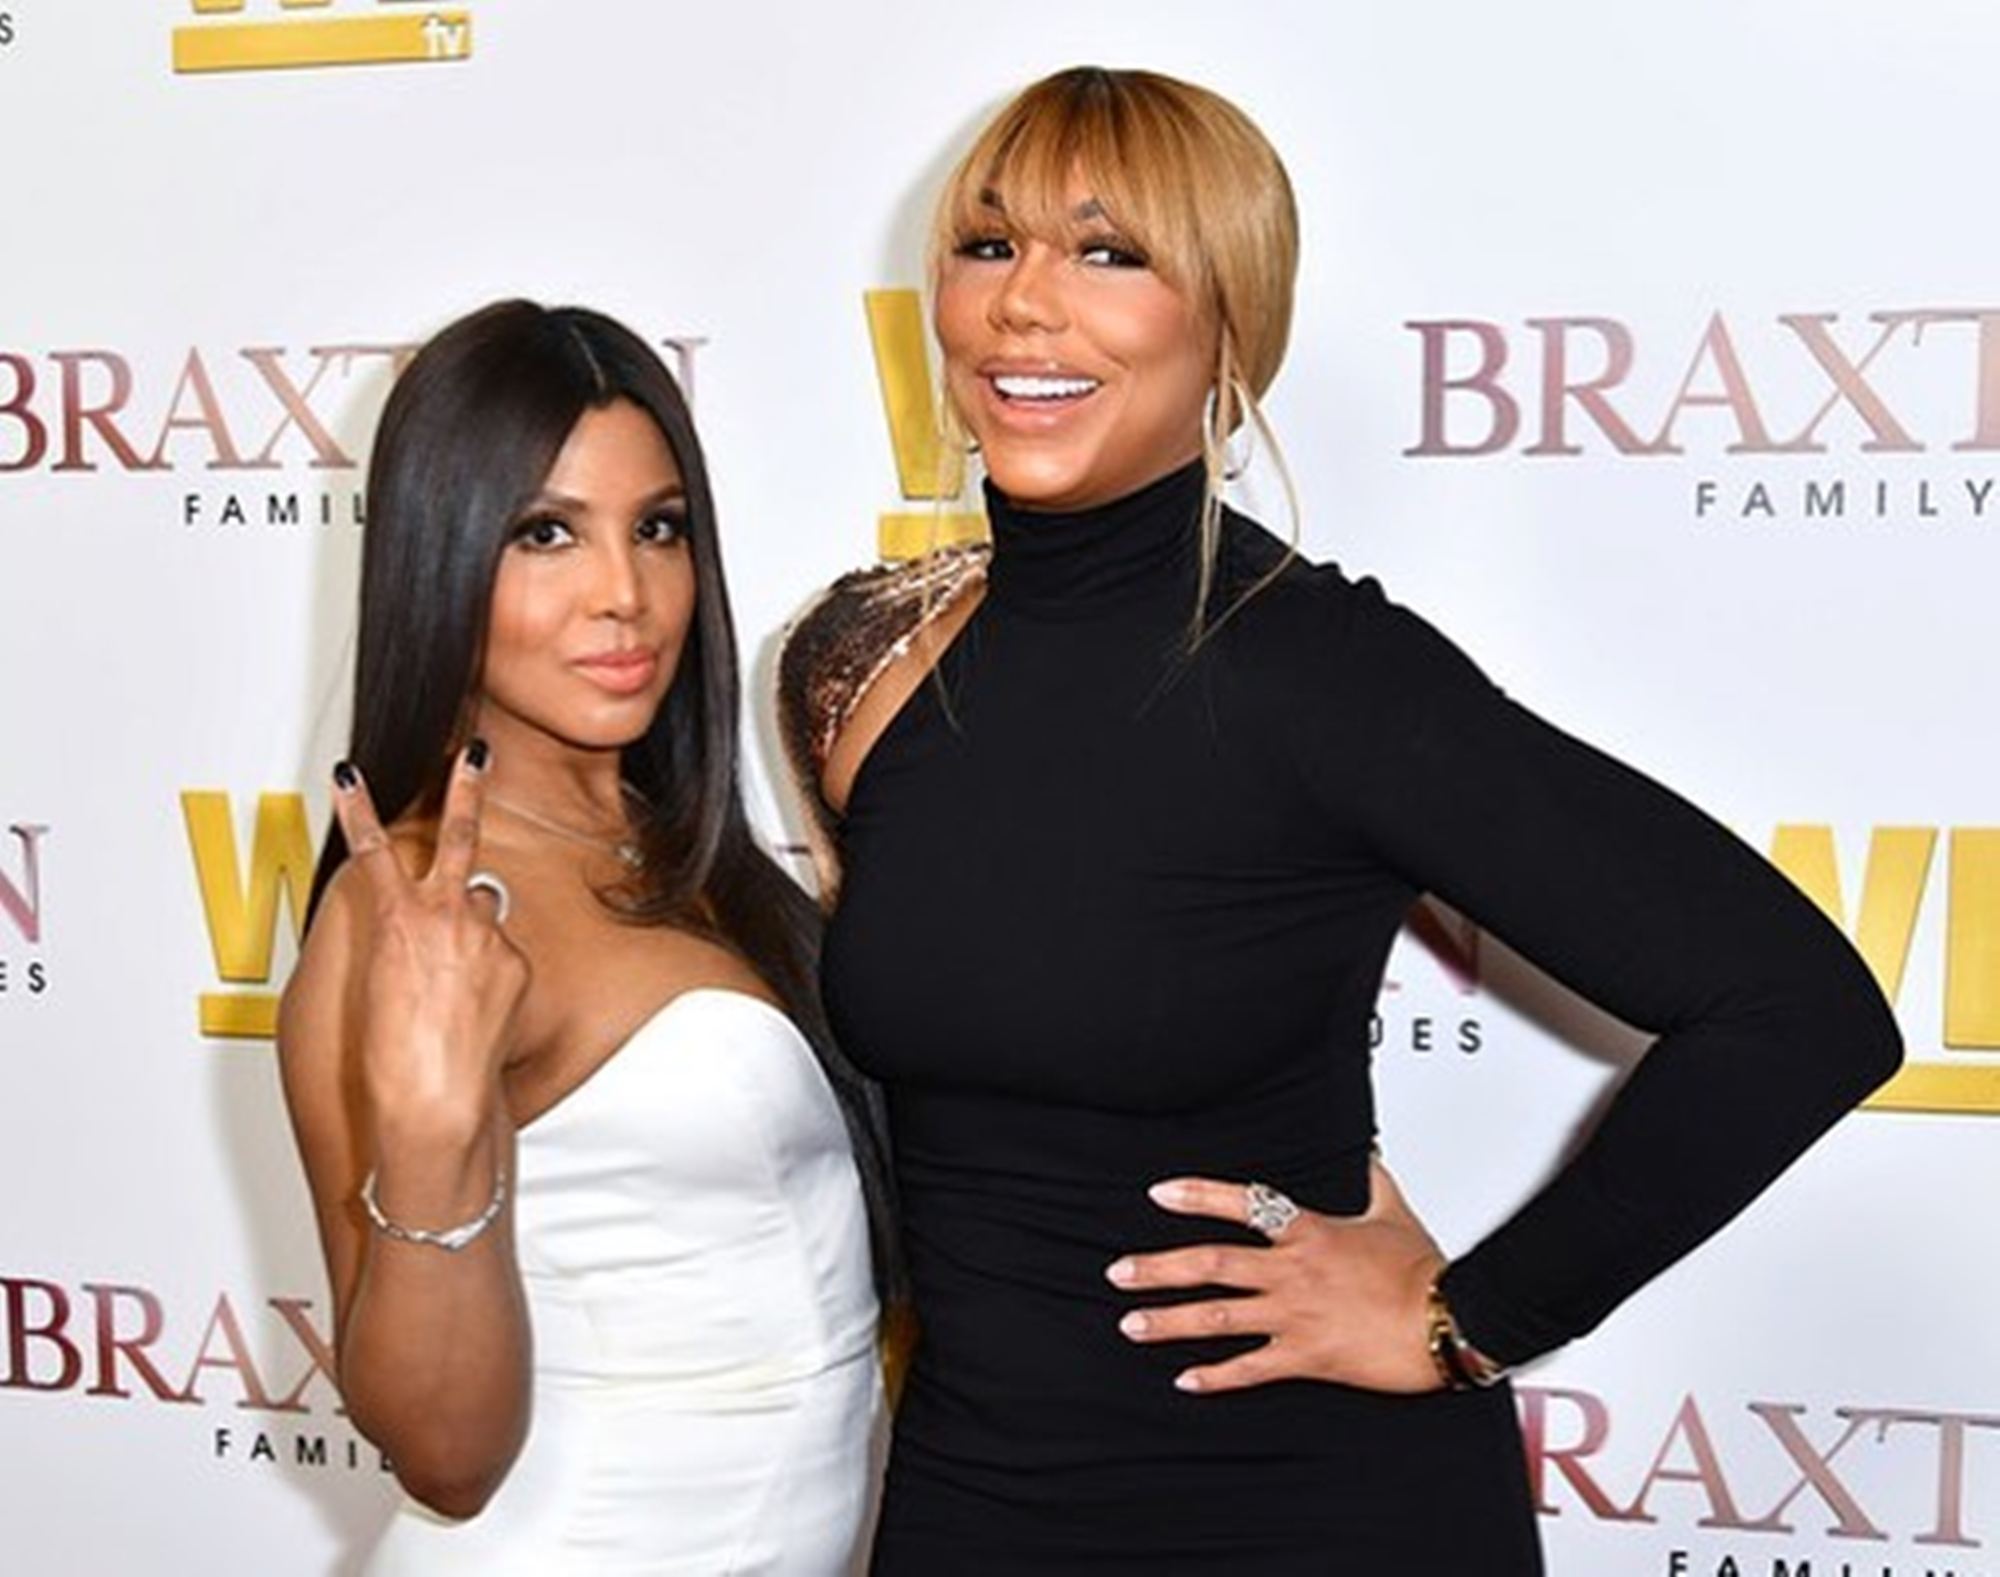 """tamar-braxton-shares-a-gorgeous-photo-with-her-sister-toni-braxton-for-her-anniversary"""